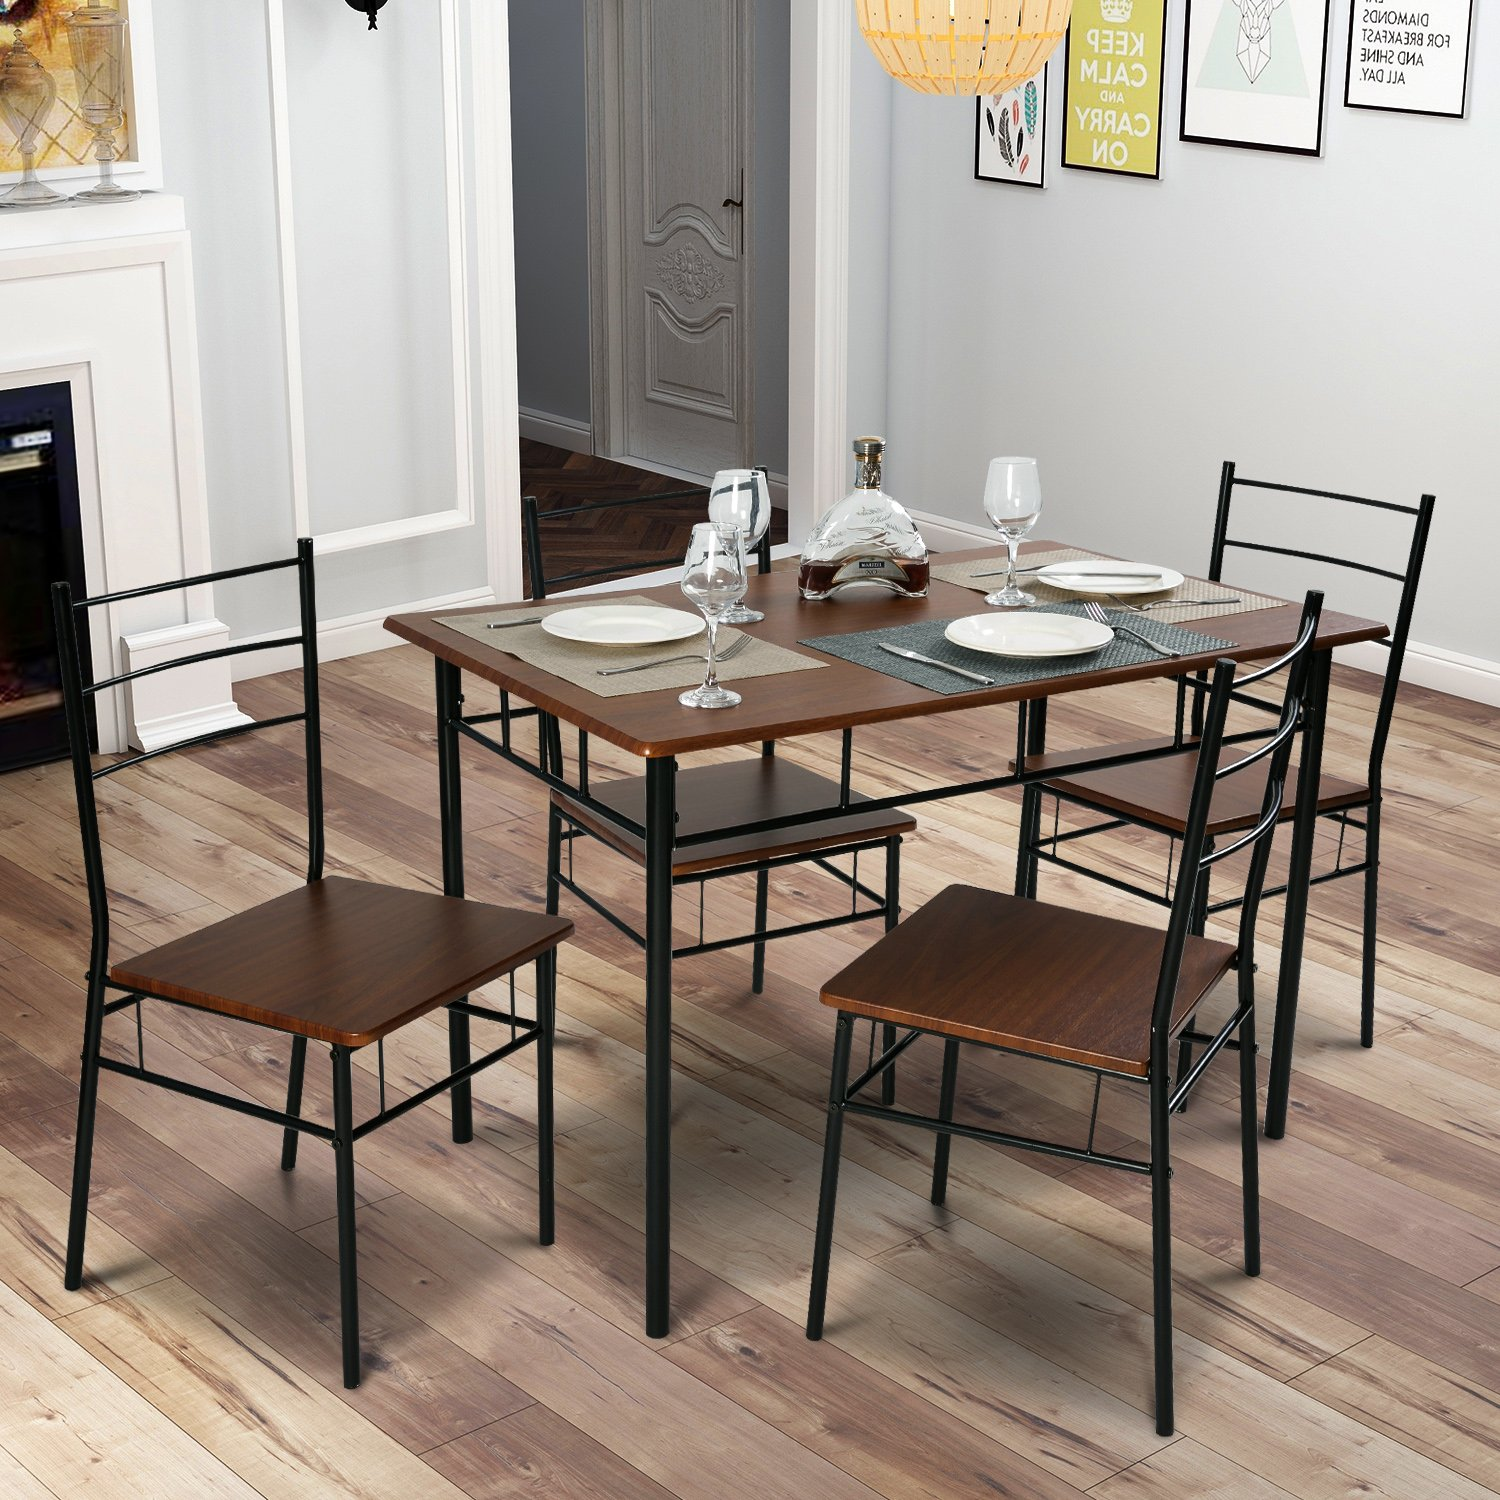 Merax 5 Pcs Wood and Metal Dining Set Table and 4 Chairs Home Kitchen Modern FurniturexFF08;EspressoxFF09; Harper&Bright Designs WF020160DAA